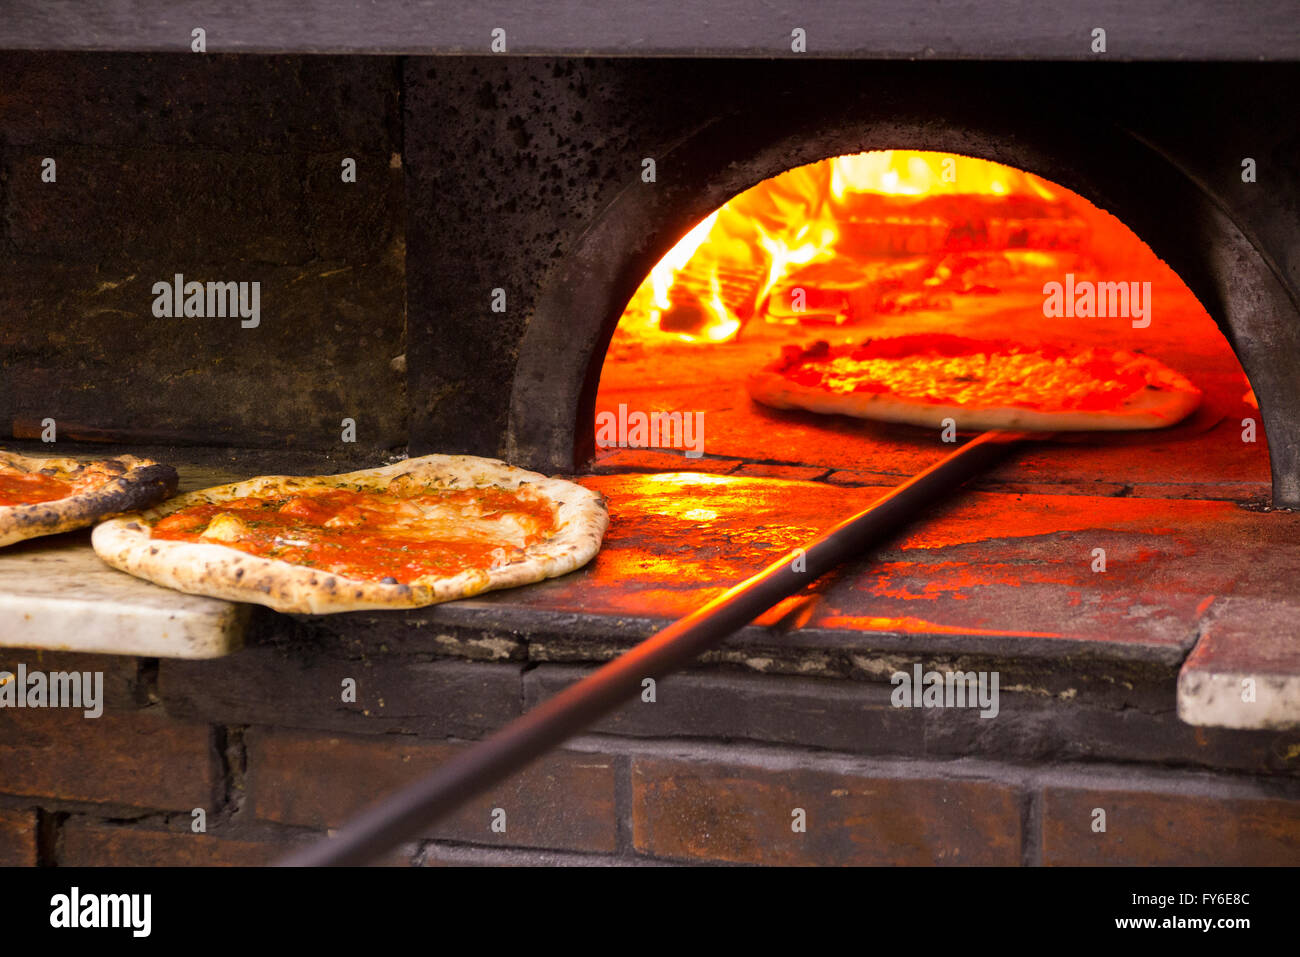 Looking inside a wood burning pizza oven at pizzas being baked in famous Italian restaurant in Naples, Pizzeria - Stock Image